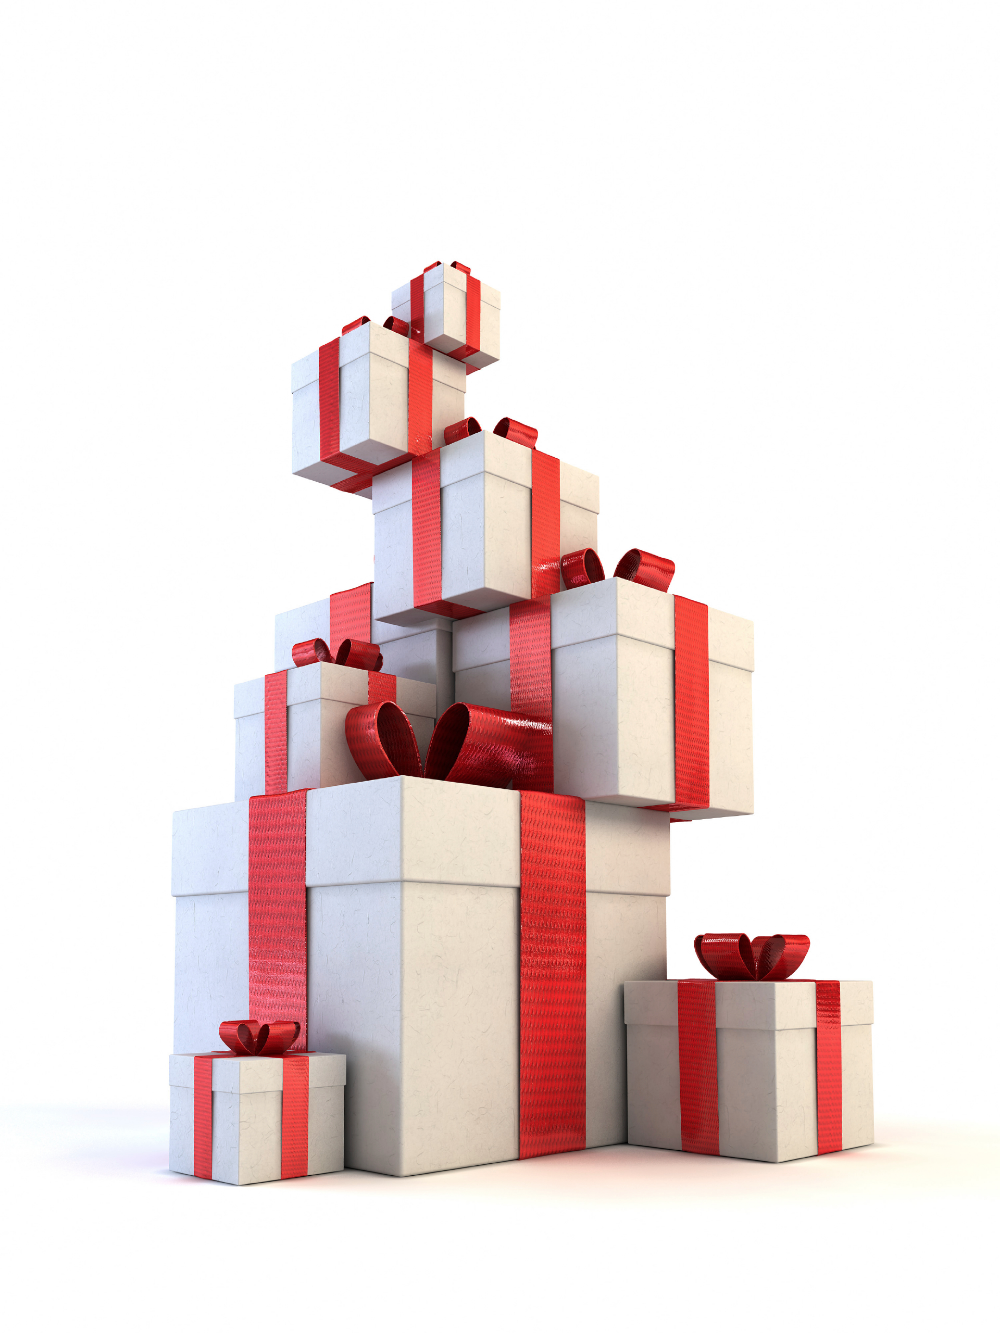 Stacked Gift Boxes Google Search Holiday Christmas Gifts Diy Christmas Gifts Gifts